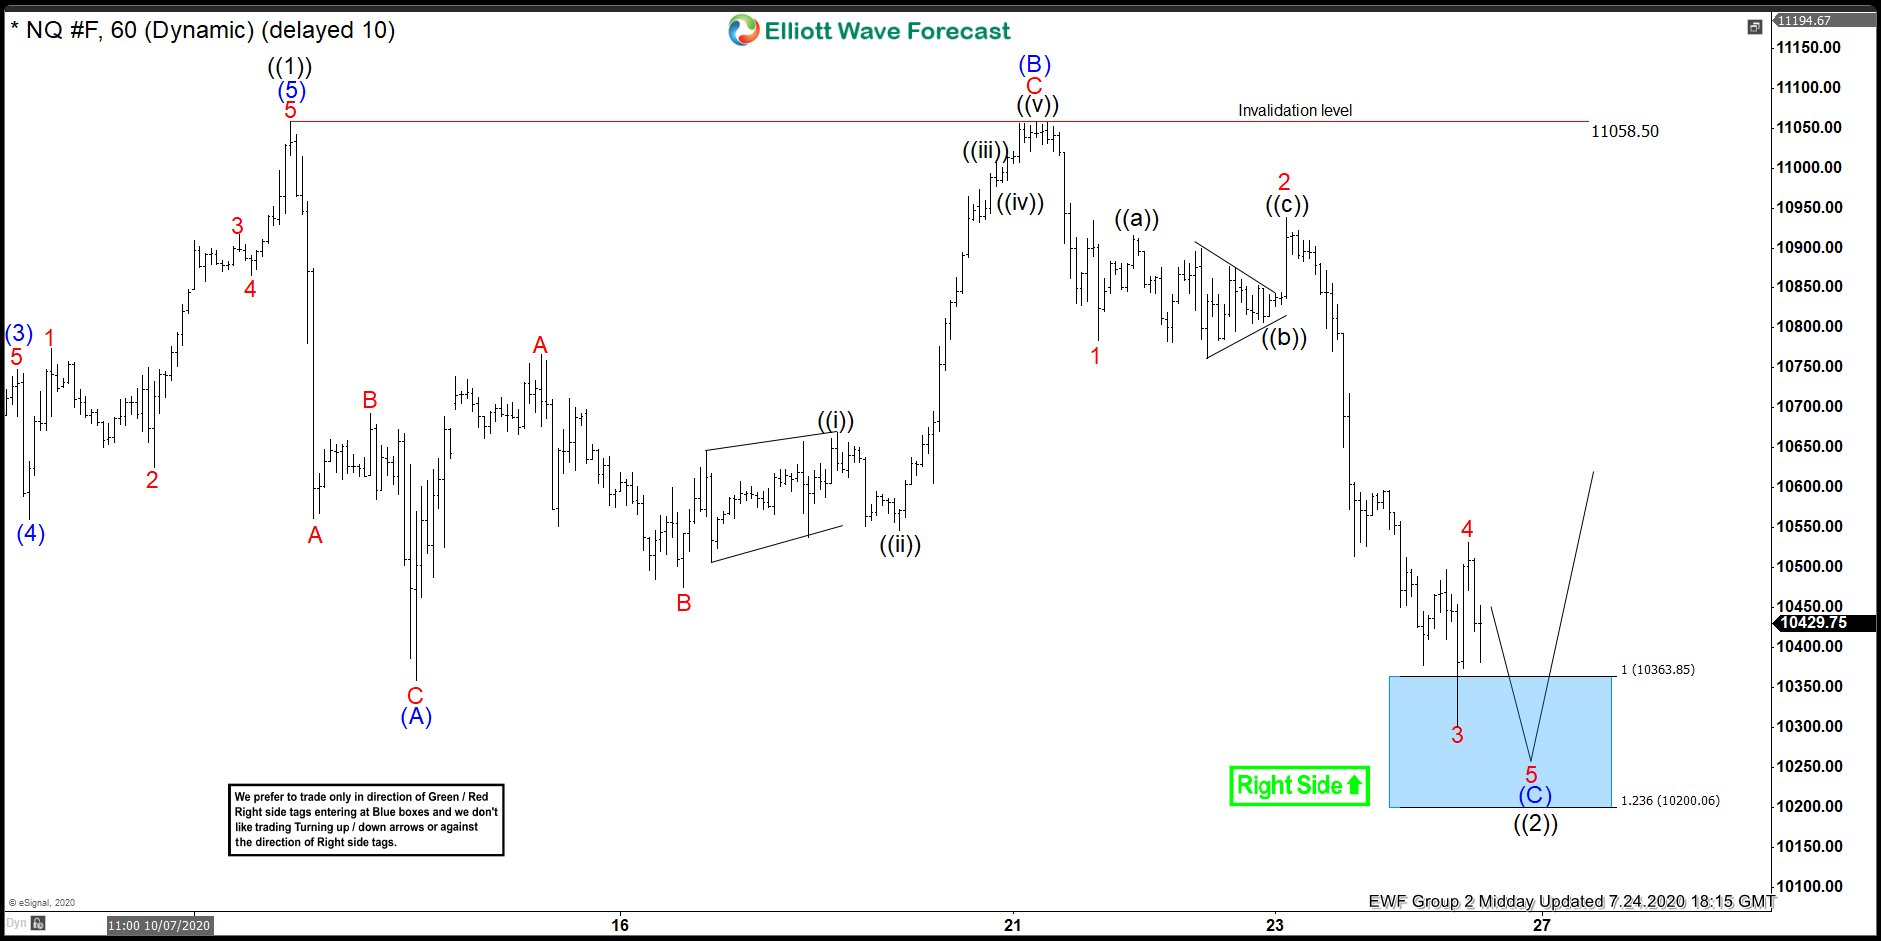 NASDAQ Forecasting The Elliott Wave Flat Correction